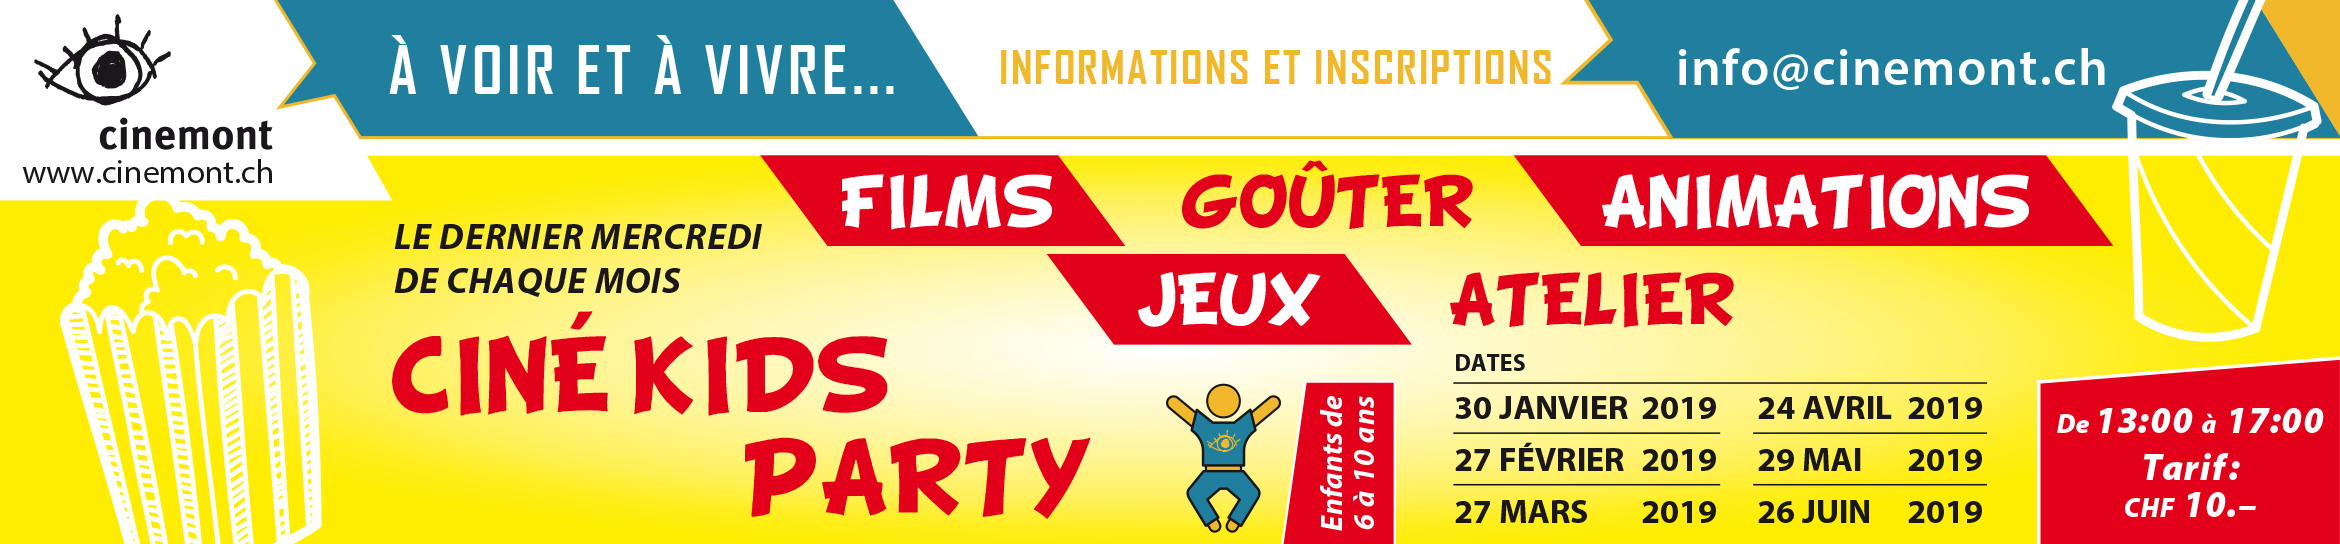 Cinemont Flyer A5 Ciné Kids Party BandeauWEB